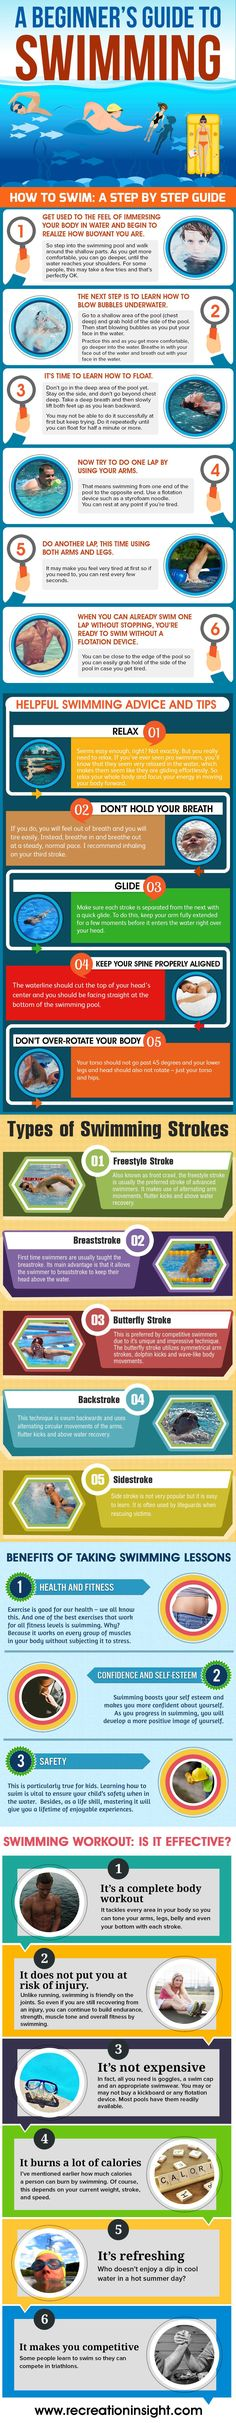 http://www.recreationinsight.com Learn how to swim with the most helpful tips & advice on swimming lessons for both baby and adults. This infographic also provide about swimming workout and it's benefit of swimming.